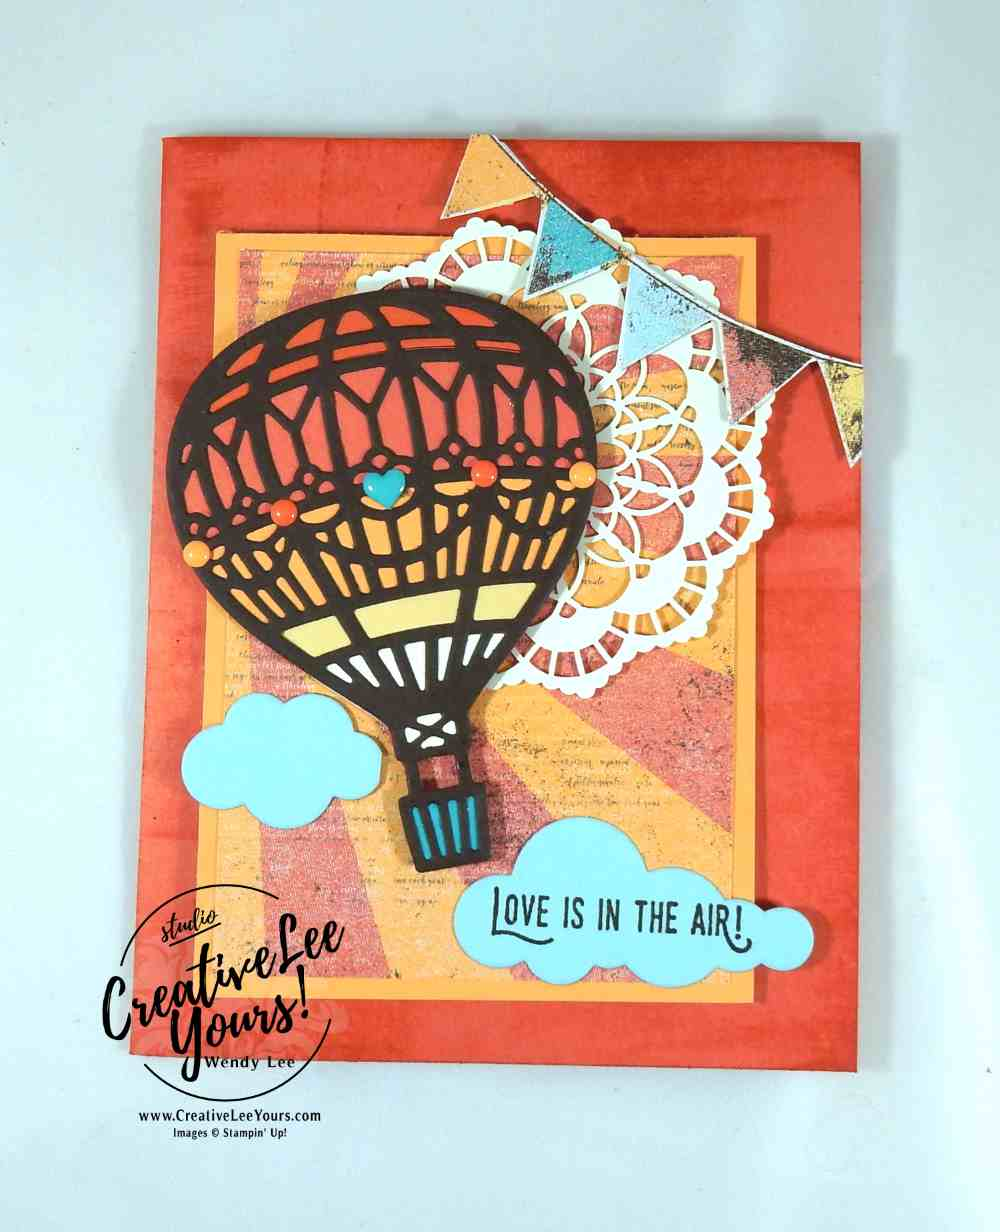 Love is in the Air Direct Ink to Paper by Wendy Lee, Stampin Up, #creativeleeyours, Lift me up stamp set, Bloomin love stamp set, up & away thinlits, January 2017 FMN class